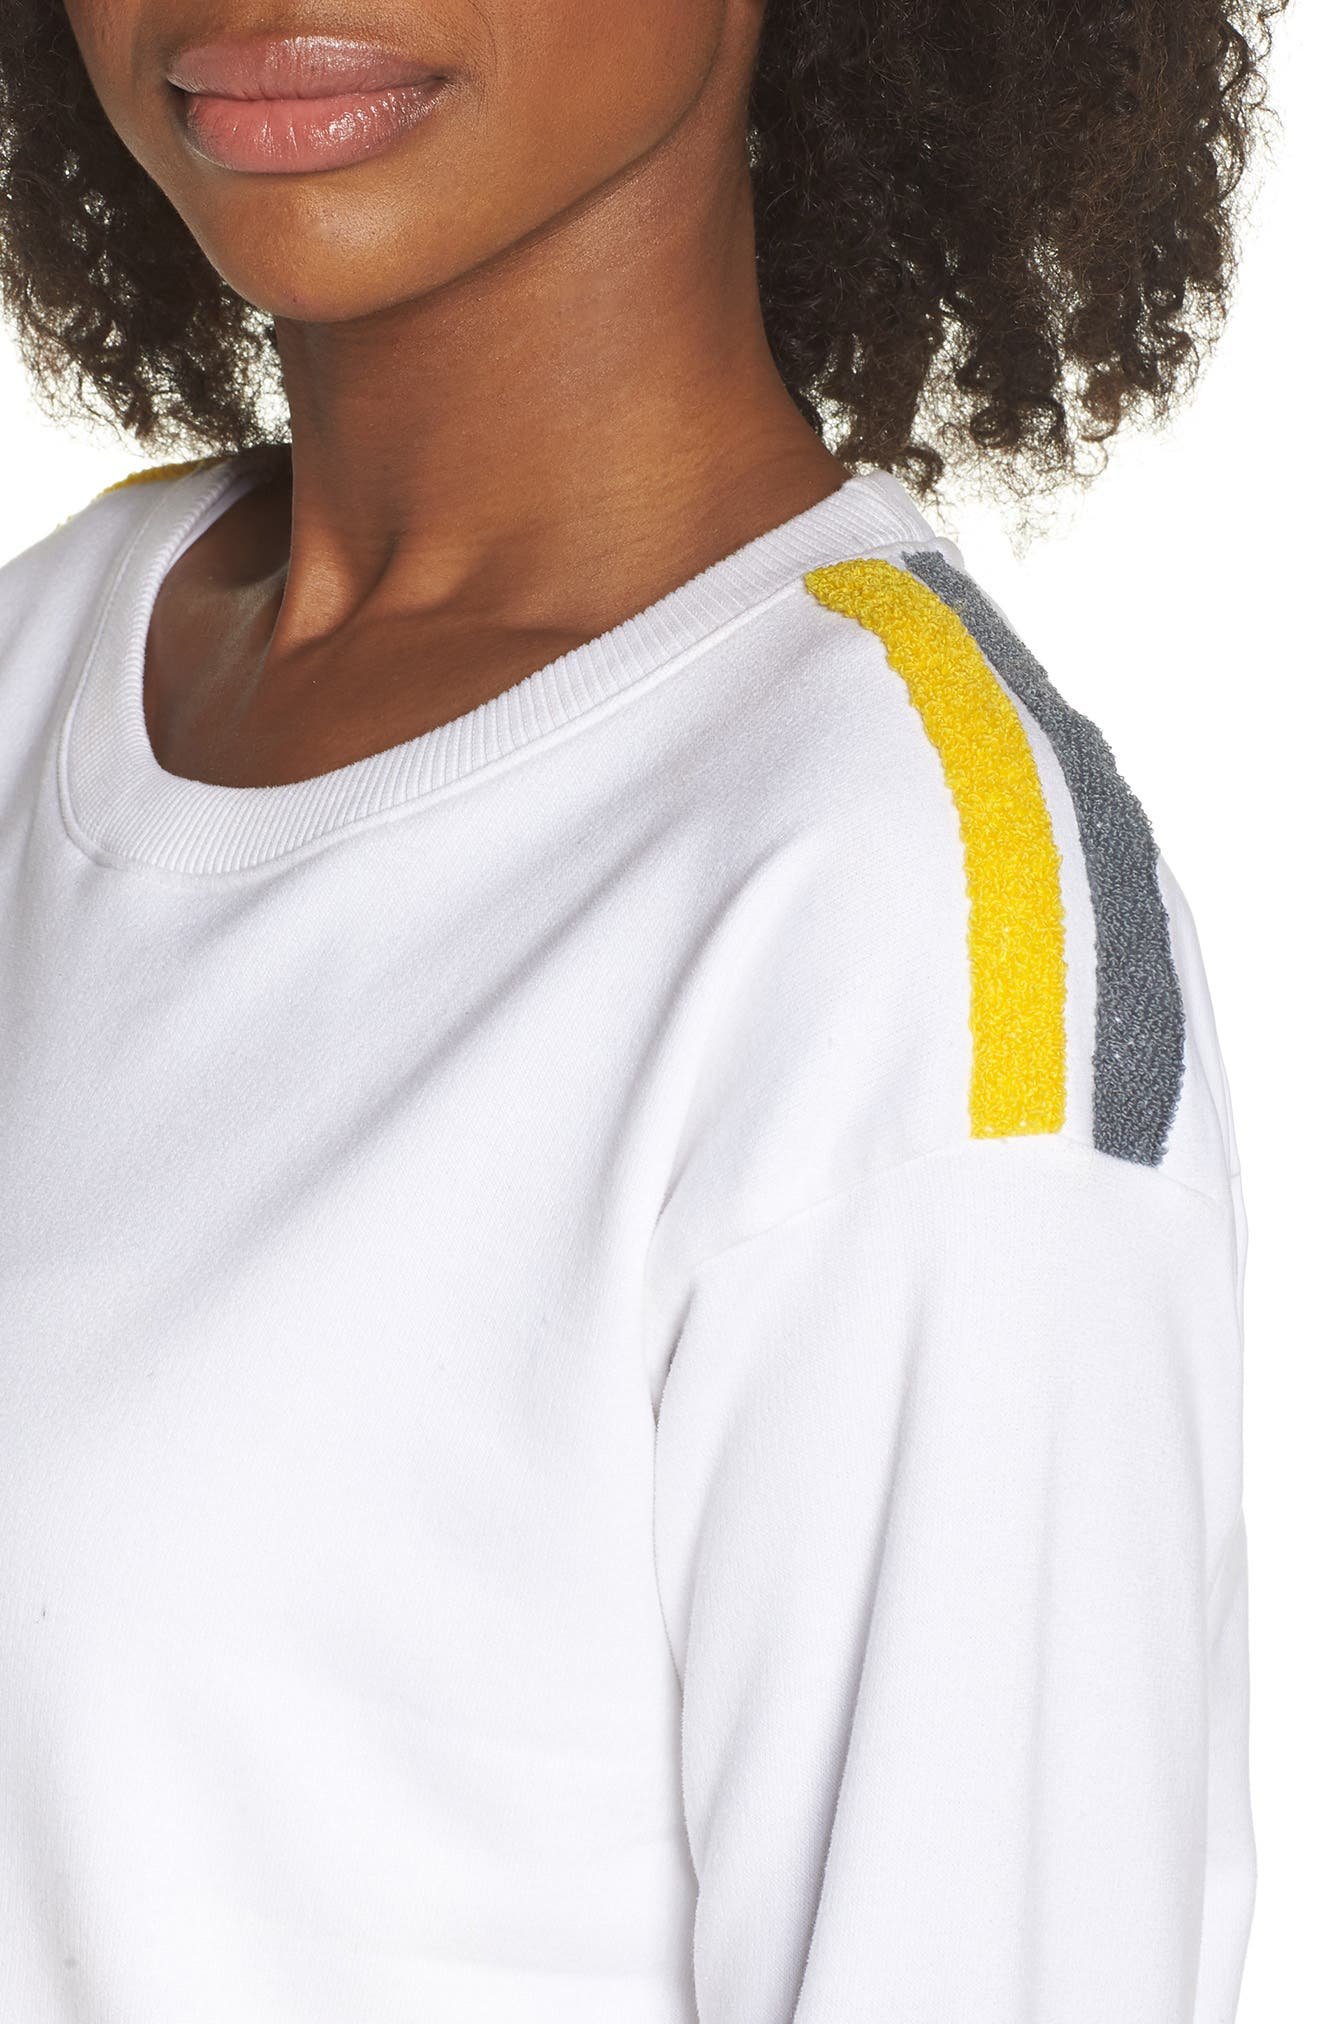 BoomBoom Athletica Tricolor Shoulder Sweatshirt,                             Alternate thumbnail 4, color,                             WHITE/ GREY/ YELLOW